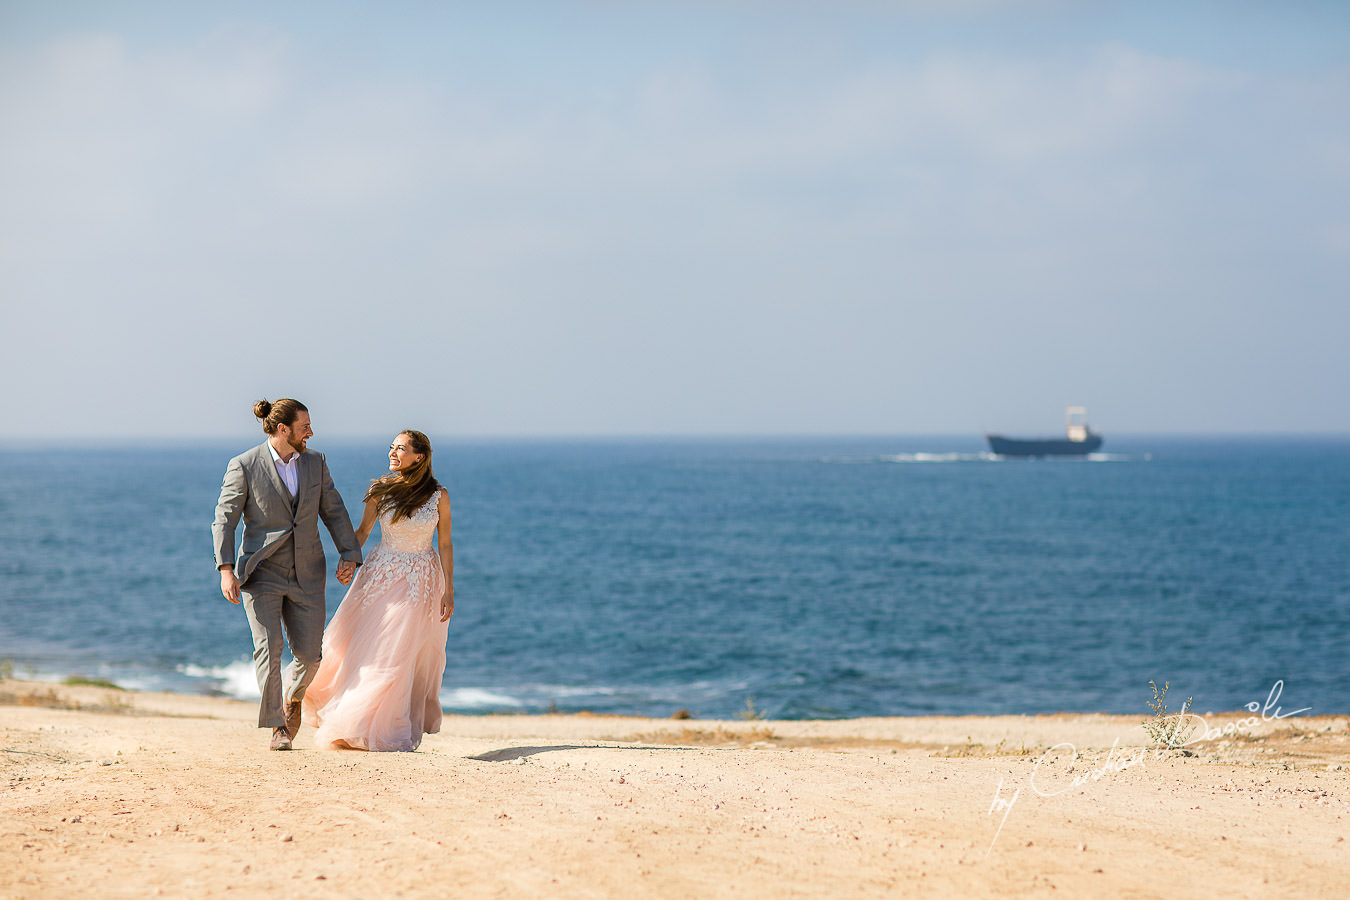 Bride and Groom's arrival, with M/V Demetrios II Shipwreck in the background, captured by Cyprus Wedding Photographer Cristian Dascalu.